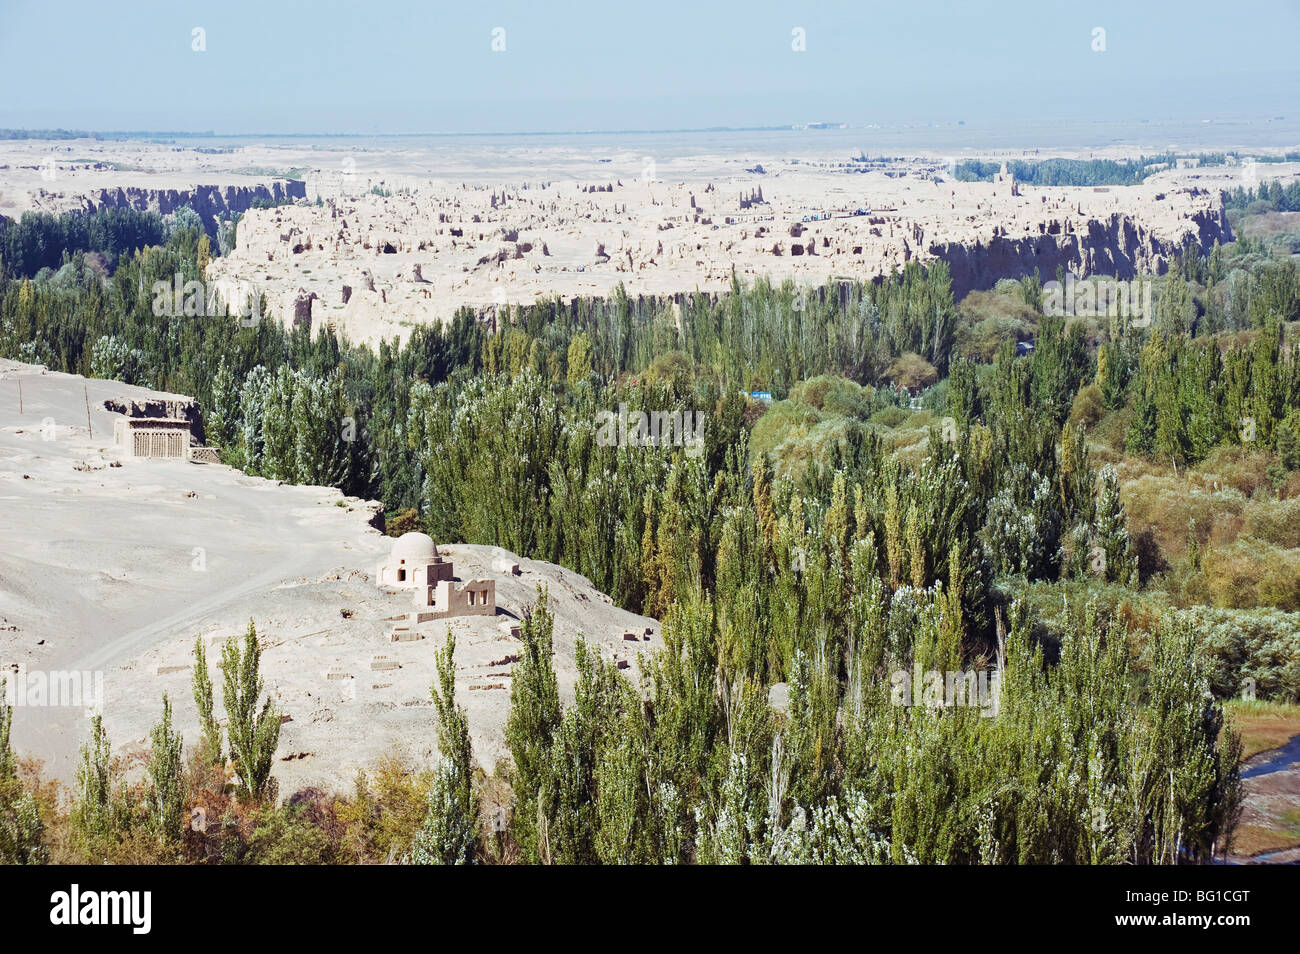 Ruined city of Jiaohe, in Turpan on the Silk Route, UNESCO World Heritage Site, Xinjiang Province, China, Asia Stock Photo